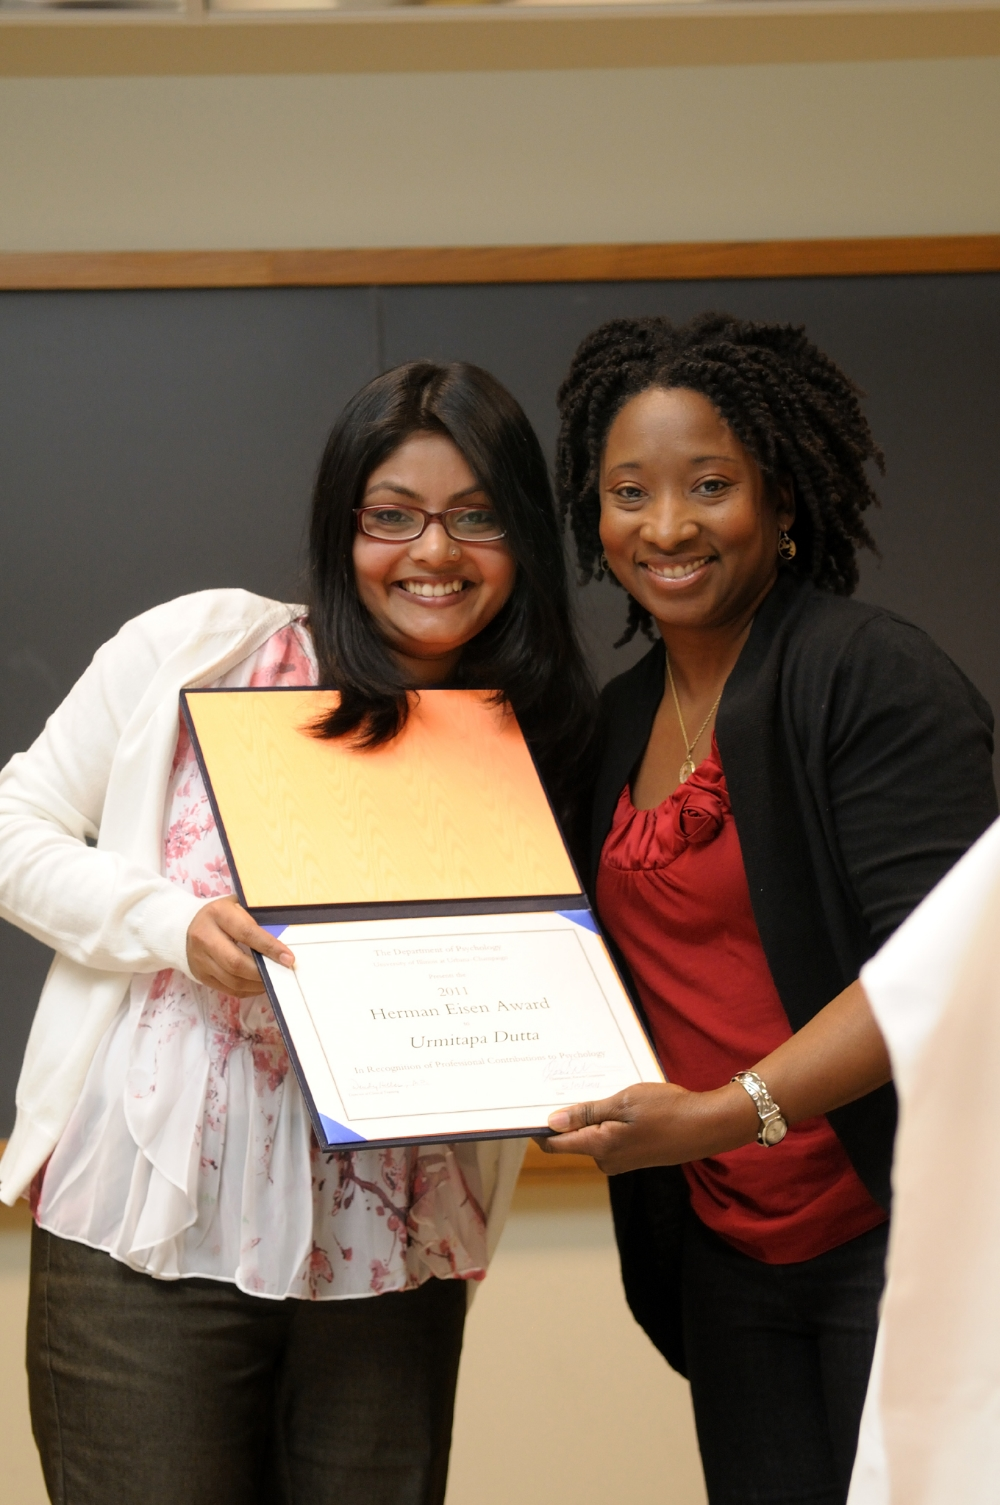 Hermen Eisen Award for the exemplary professional contribution to the practice of psychology in service of social justice, University of Illinois at Urbana Champaign, 2011